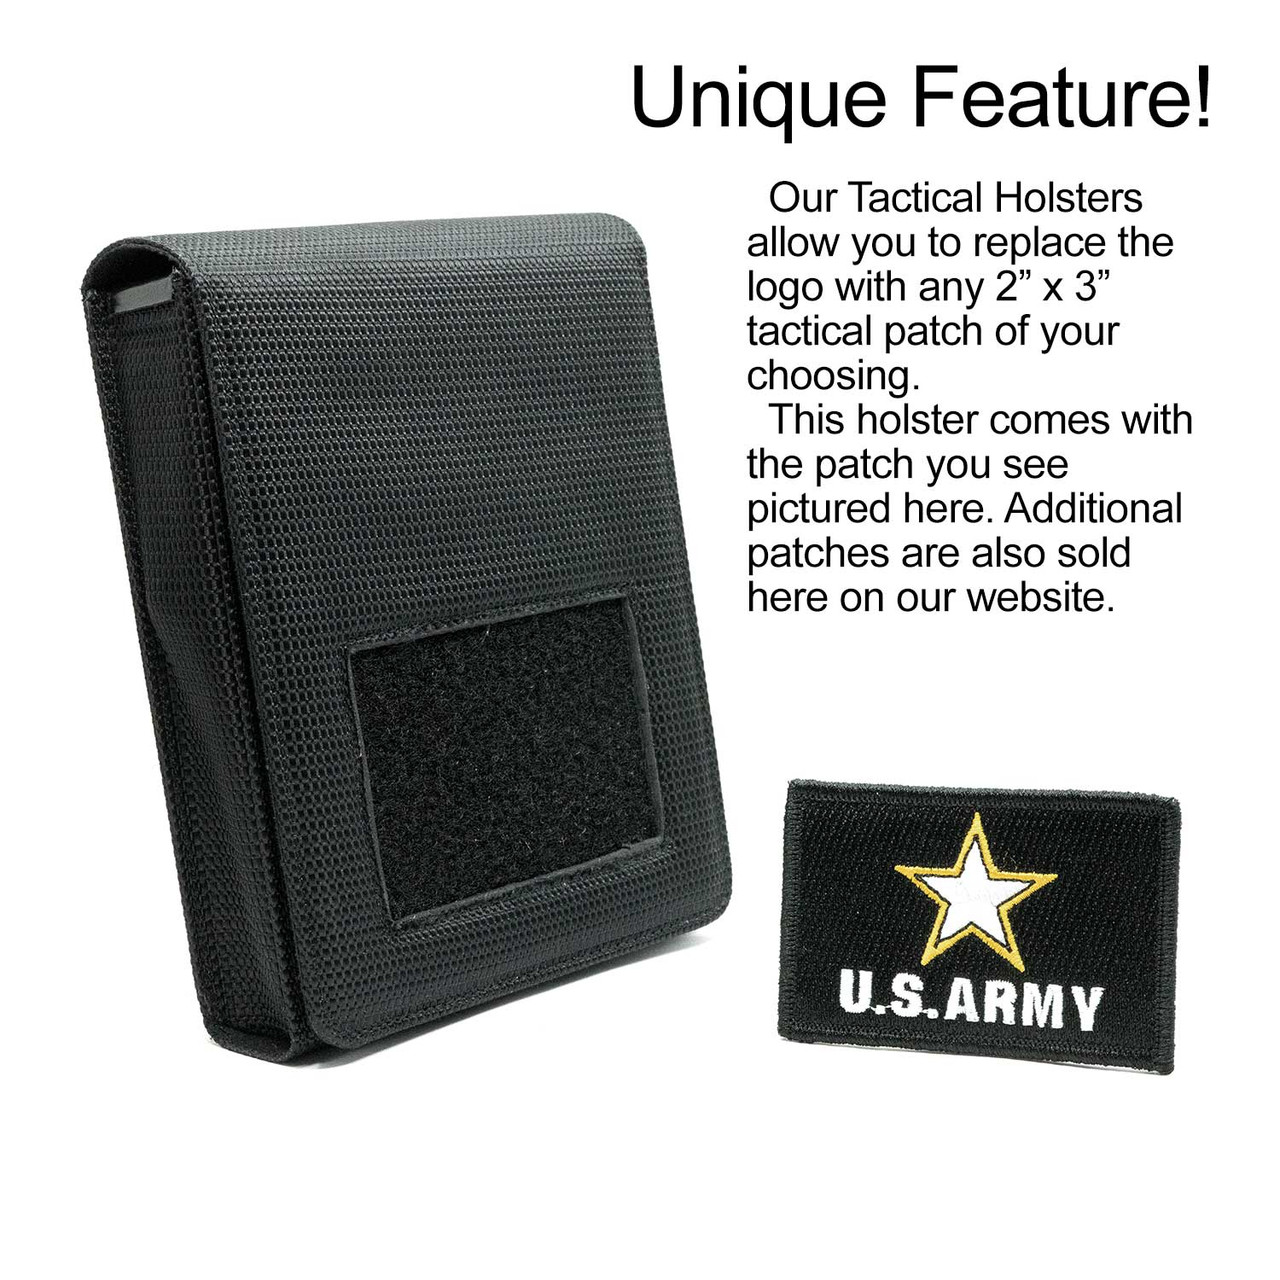 Springfield Ultra Compact Army Tactical Patch Holster